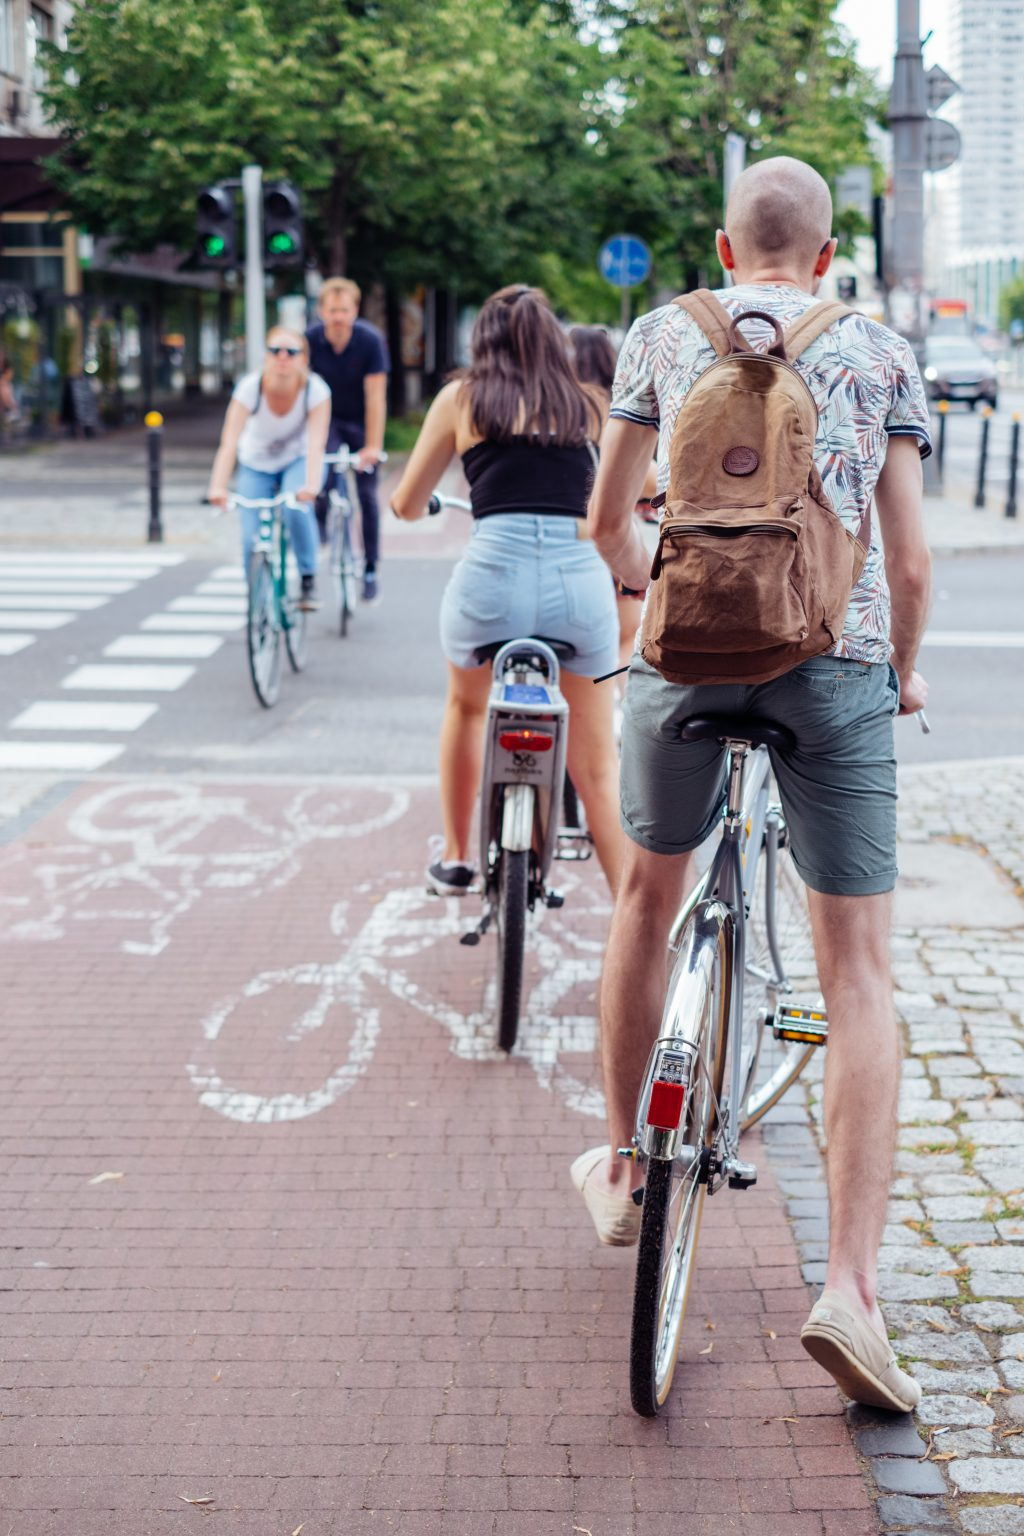 Cyclists crossing the road - free stock photo